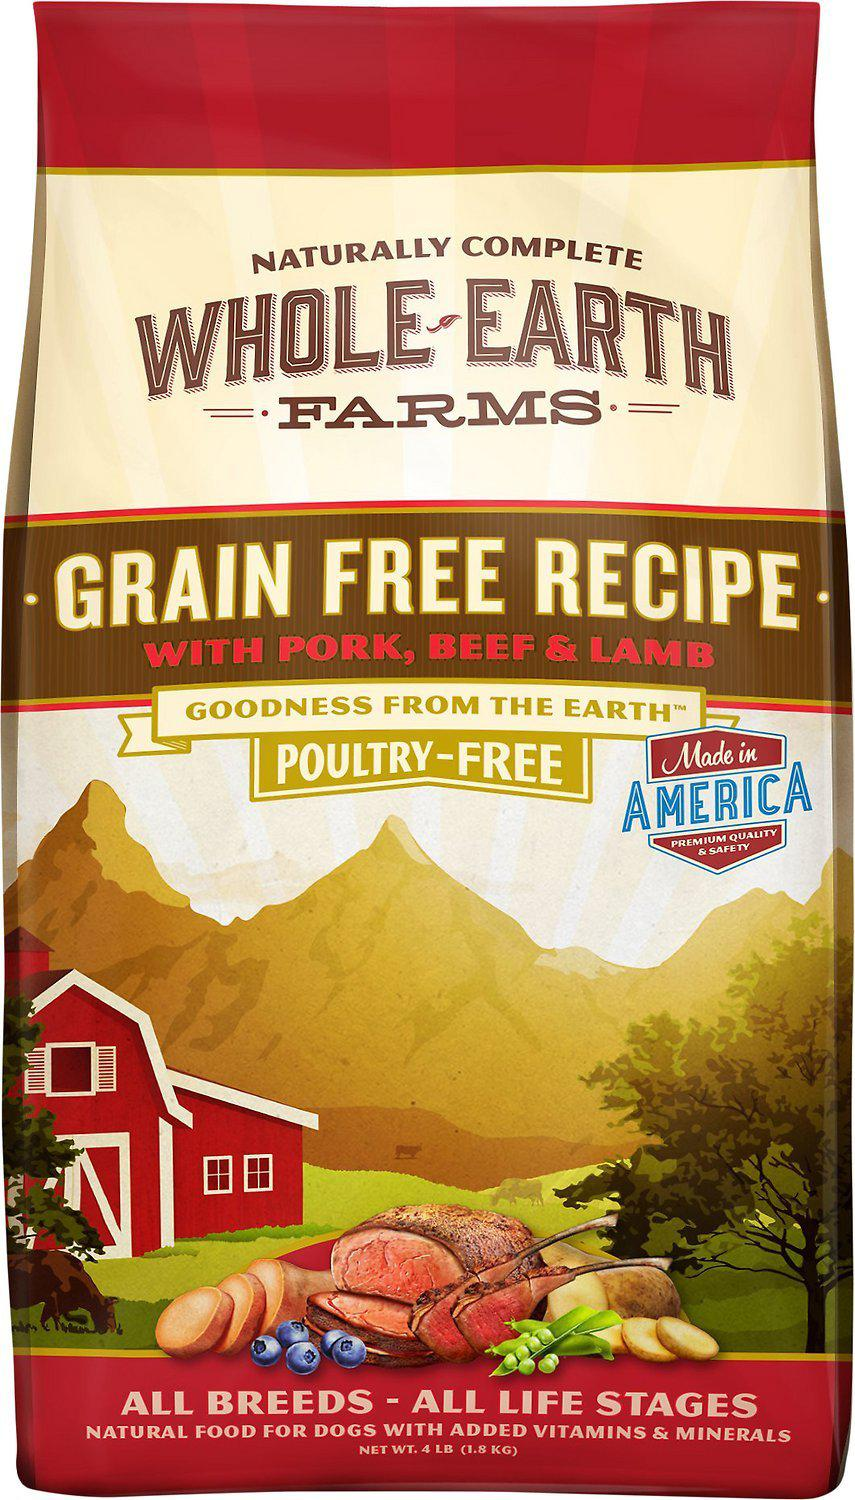 Whole Earth Farms Grain-Free Pork, Beef & Lamb Dry Dog Food-Le Pup Pet Supplies and Grooming